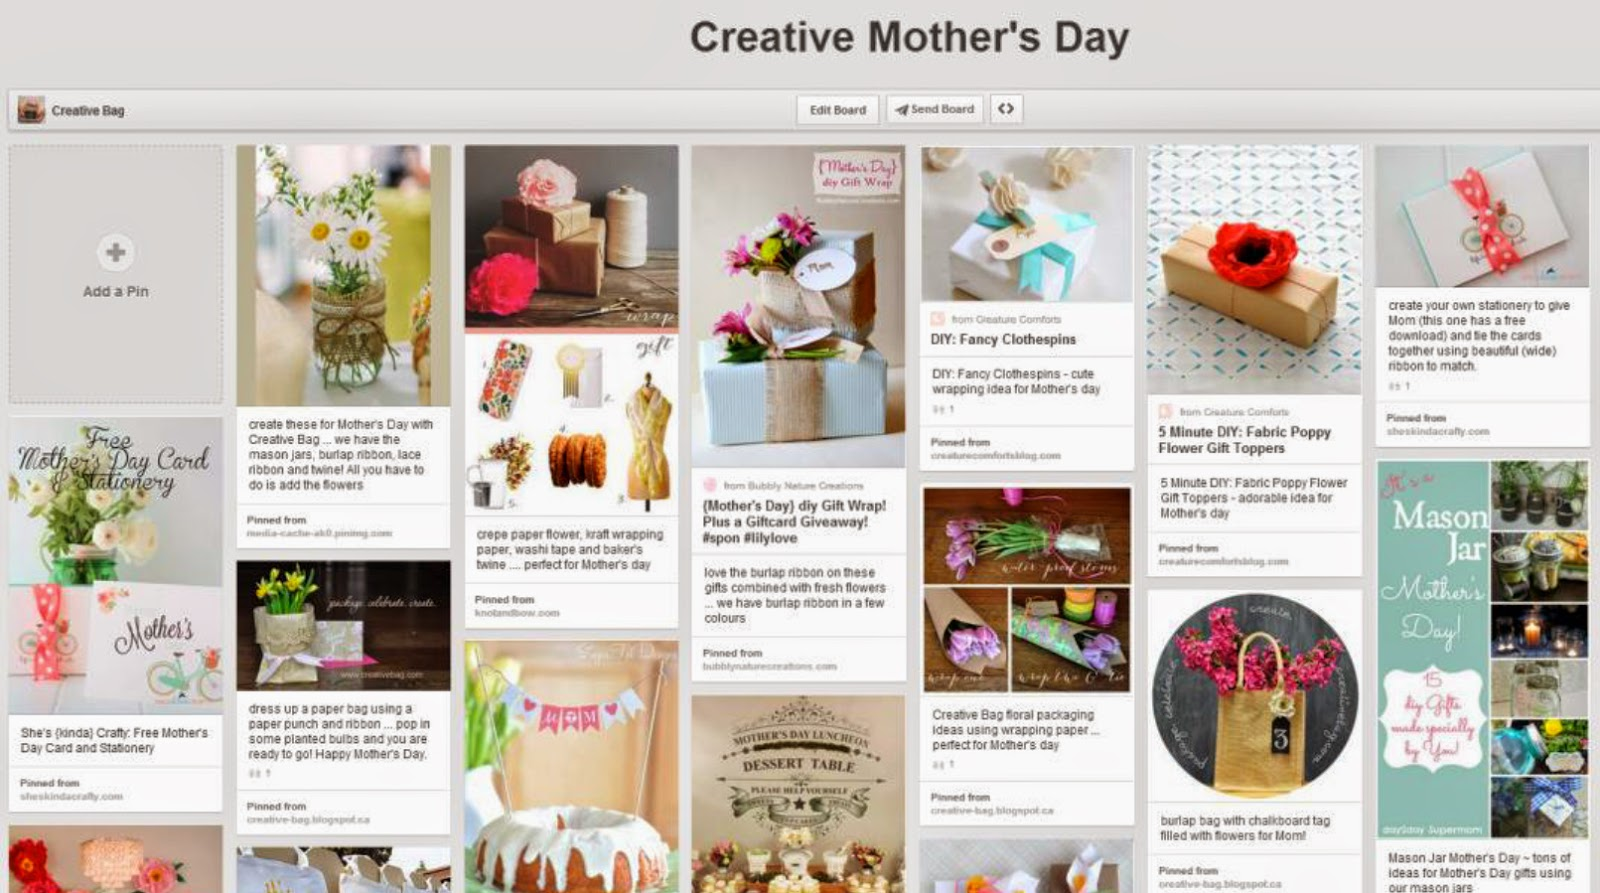 Creative Bag's Creative Mother's Day Pinterest board